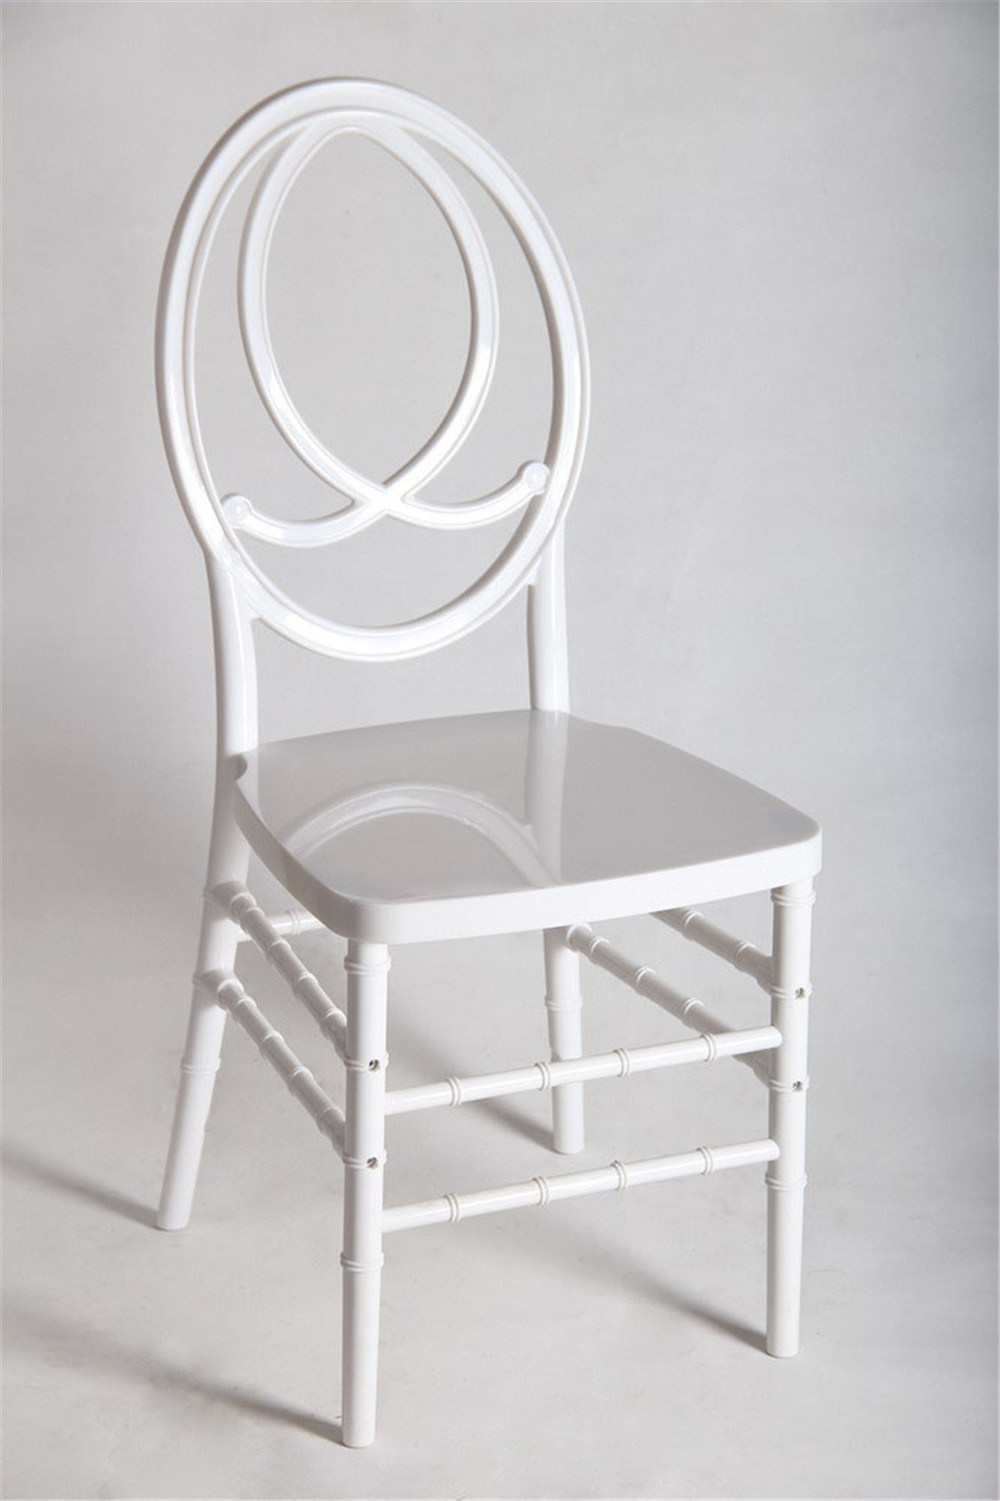 Groovy Hot Item White Wedding Phoenix Infinity Chair Lamtechconsult Wood Chair Design Ideas Lamtechconsultcom